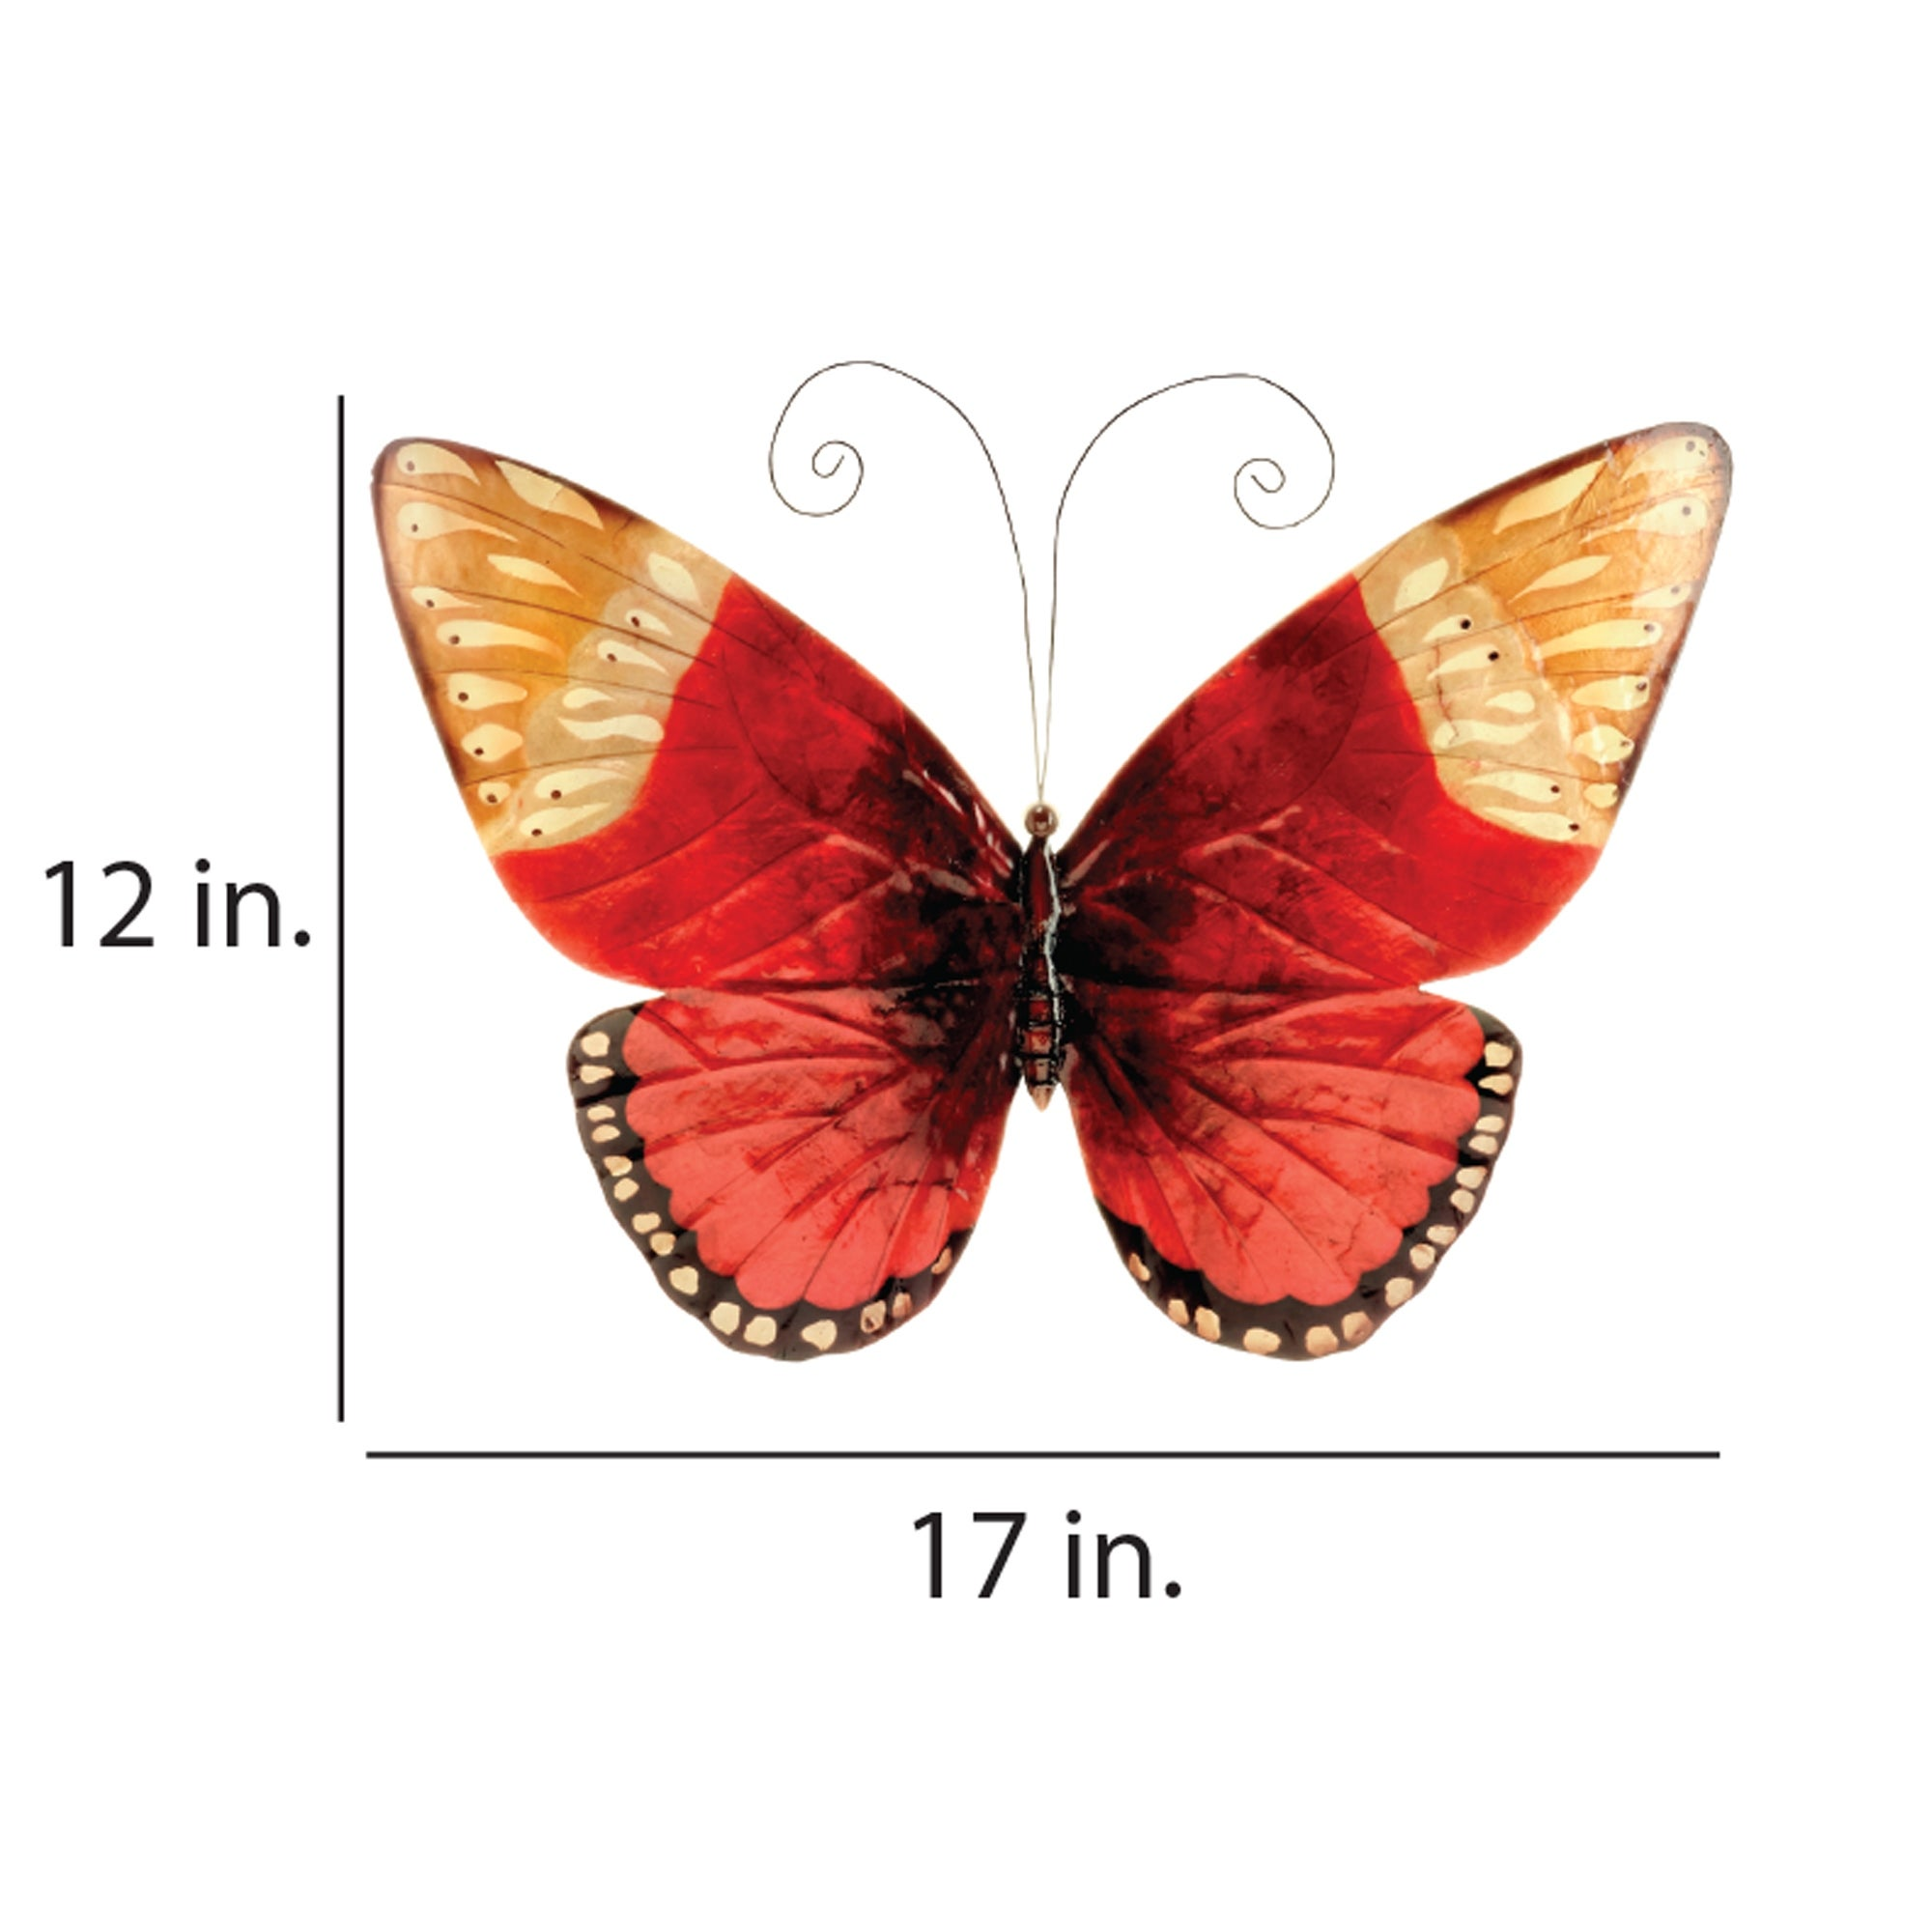 Butterfly Chisheen Butterfly Wall Decor Red Metal Sculpture for Hanging Indoor or Outdoor Large Size